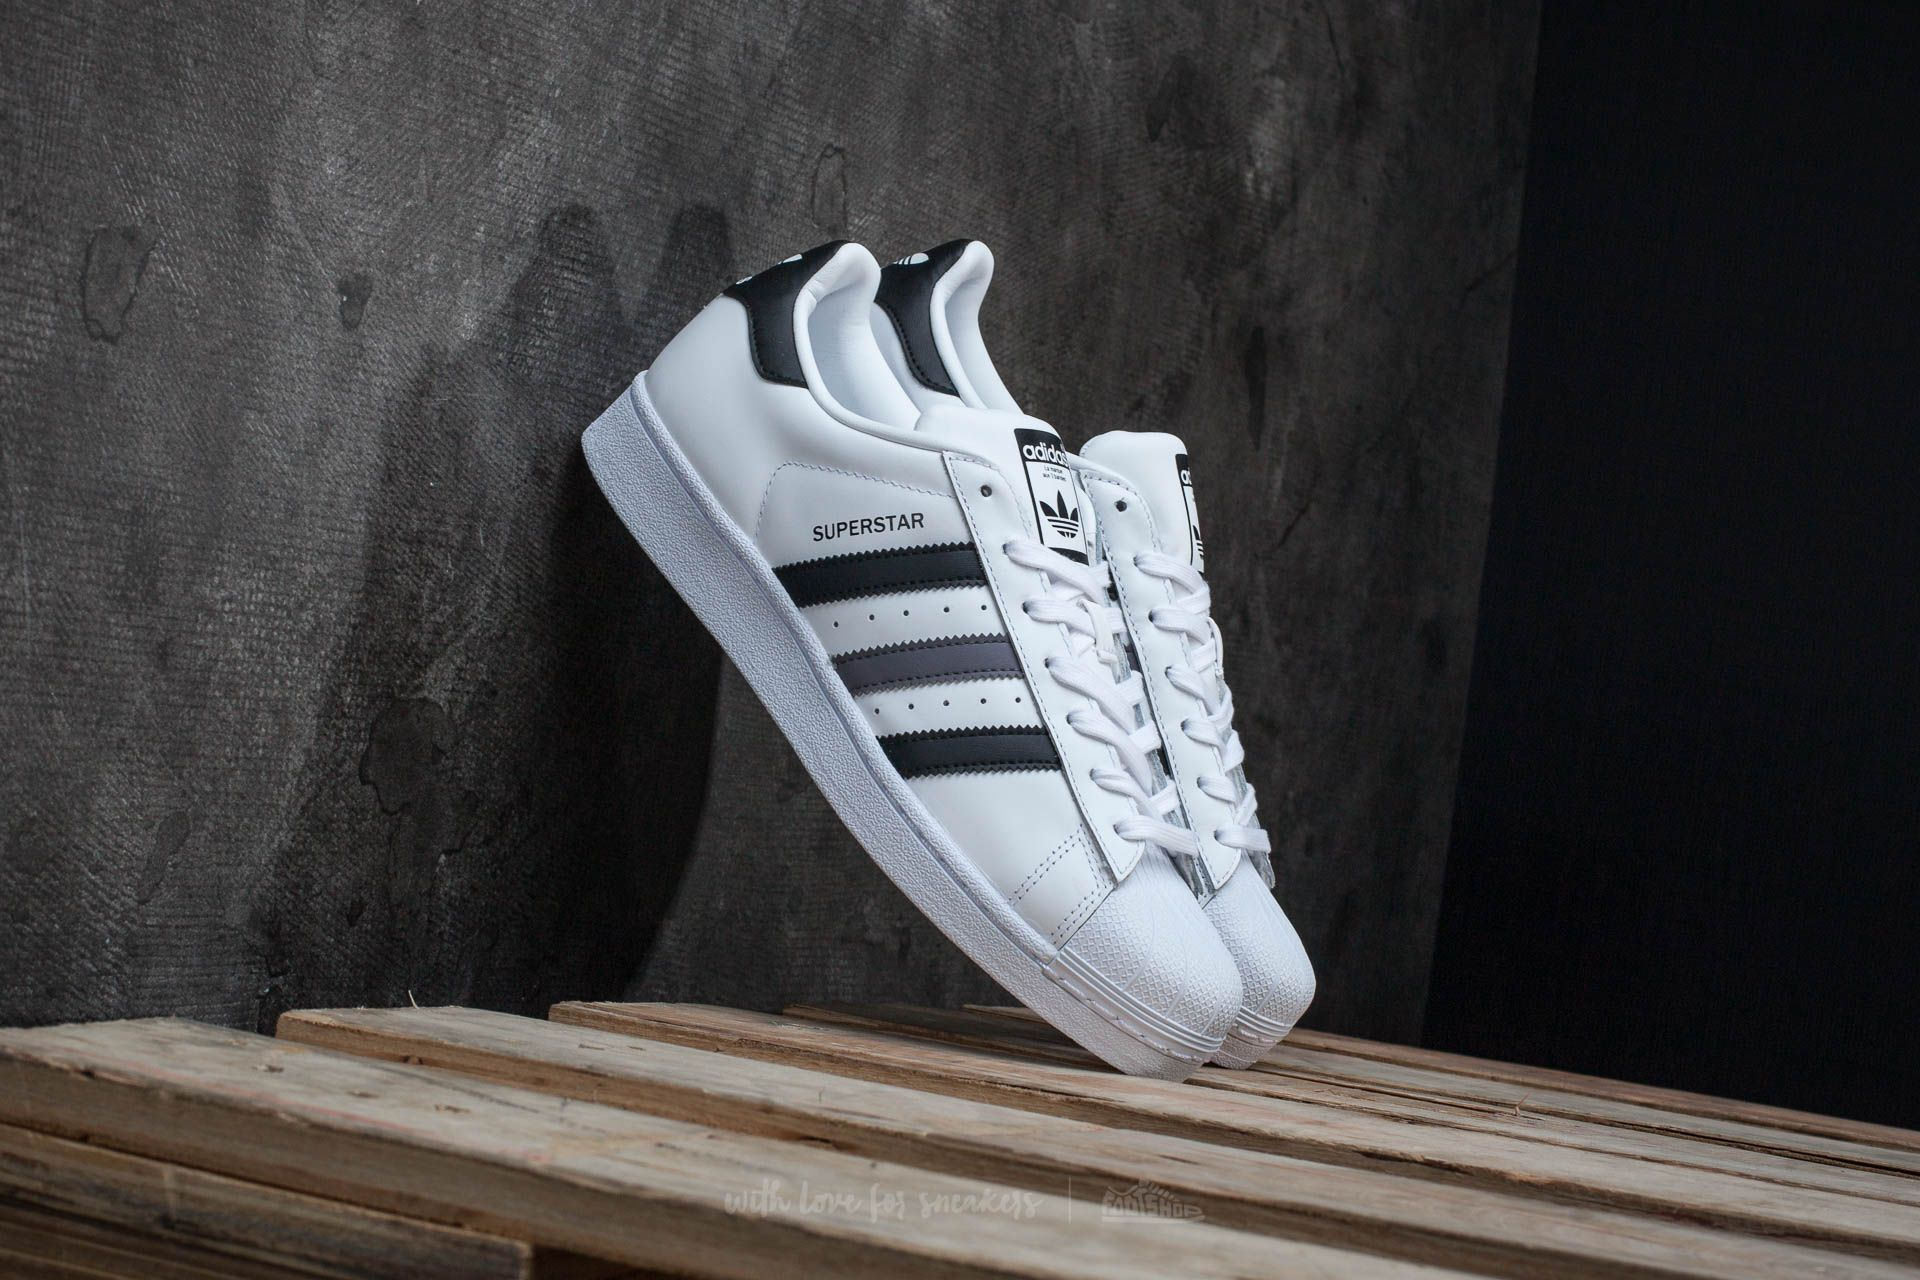 6fe679a7896 adidas Superstar Ftw White  Core Black